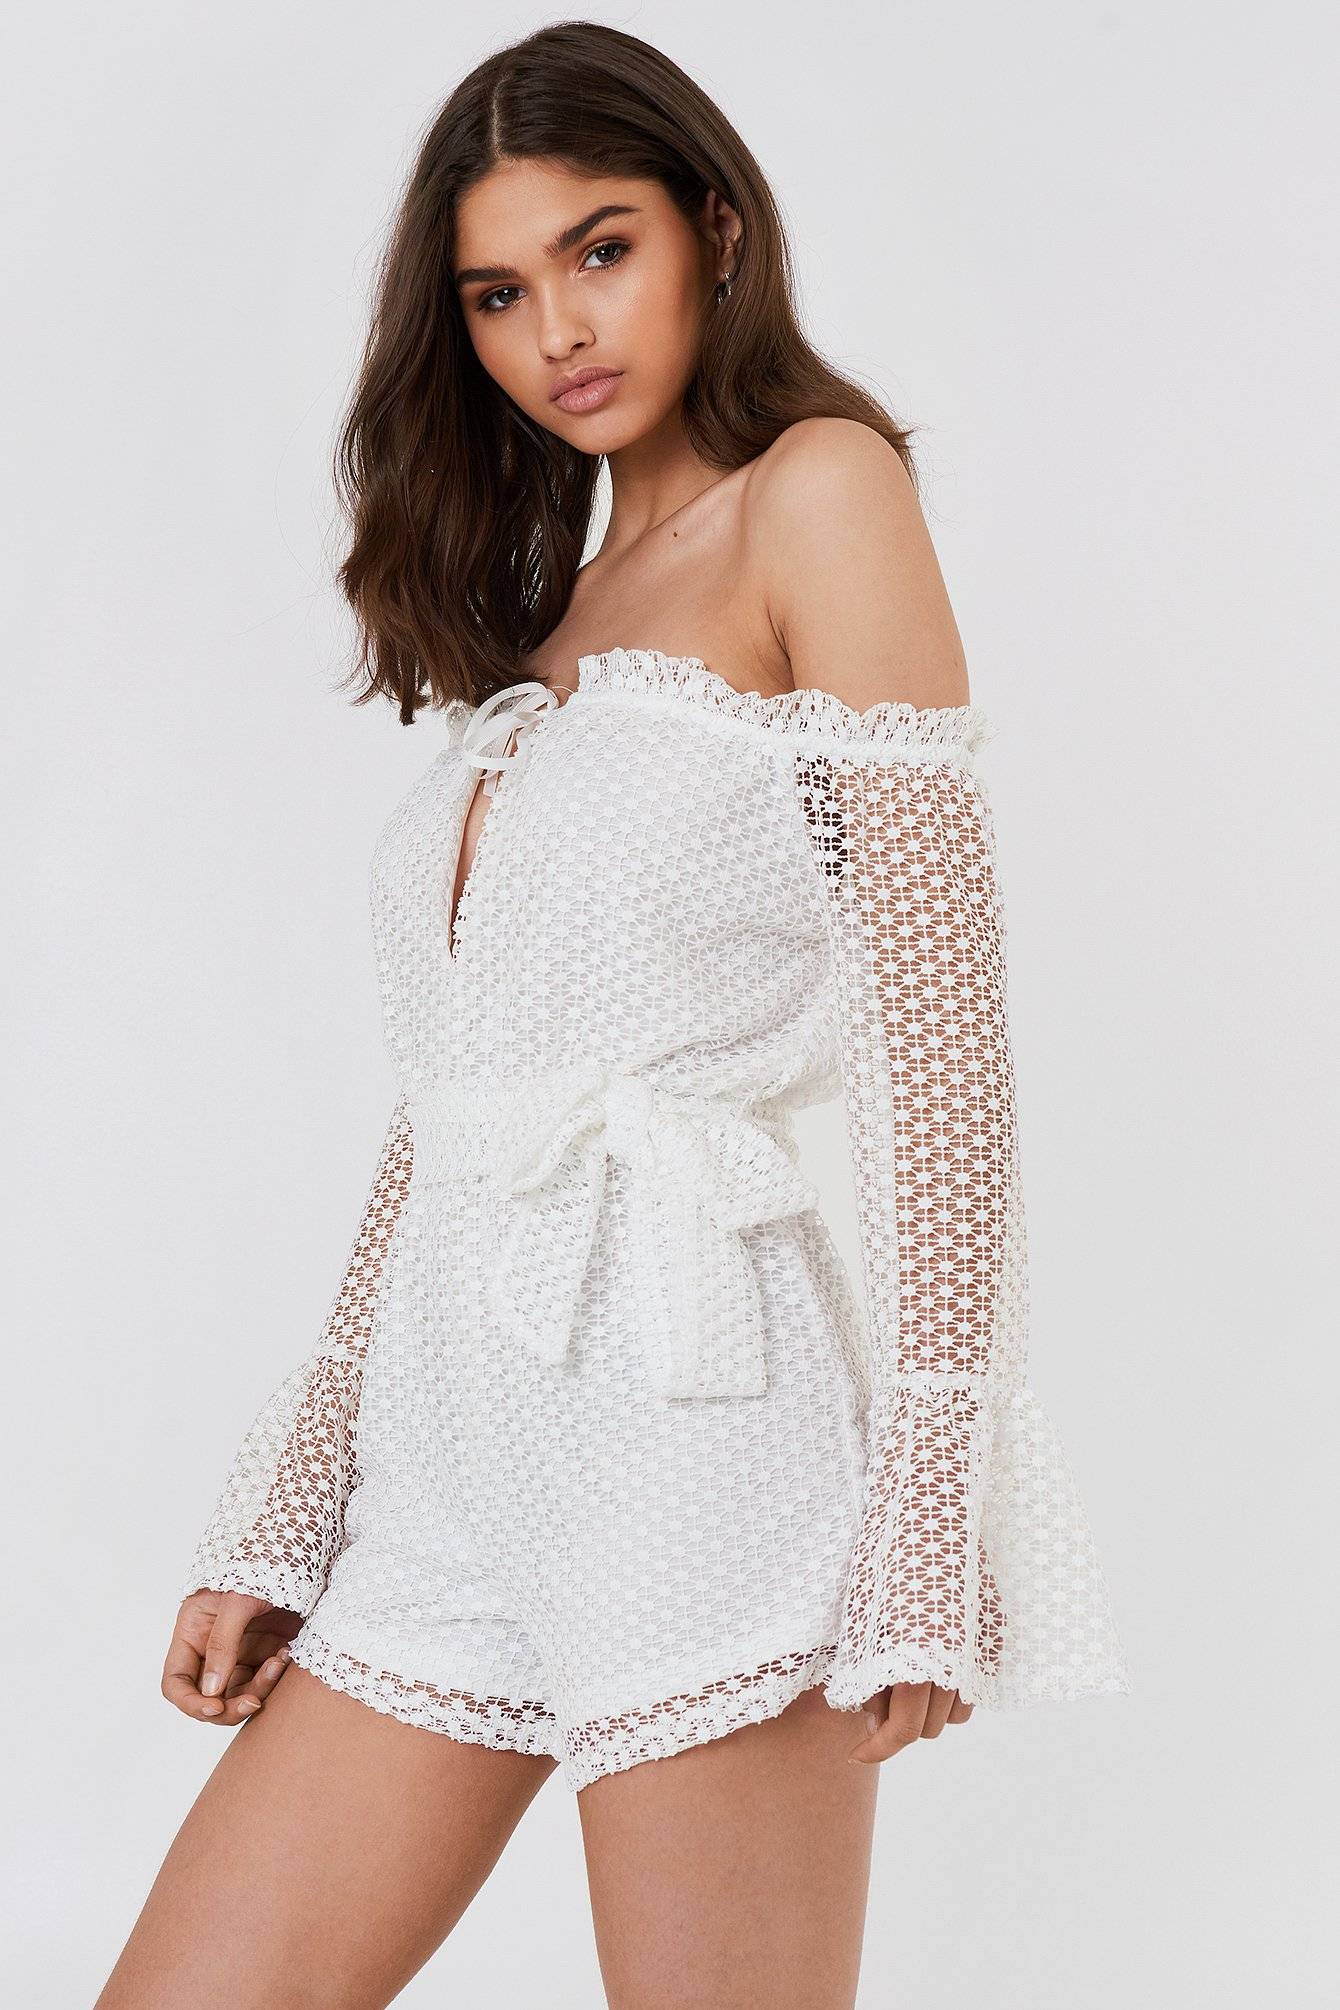 FAYT Angus Playsuit - White